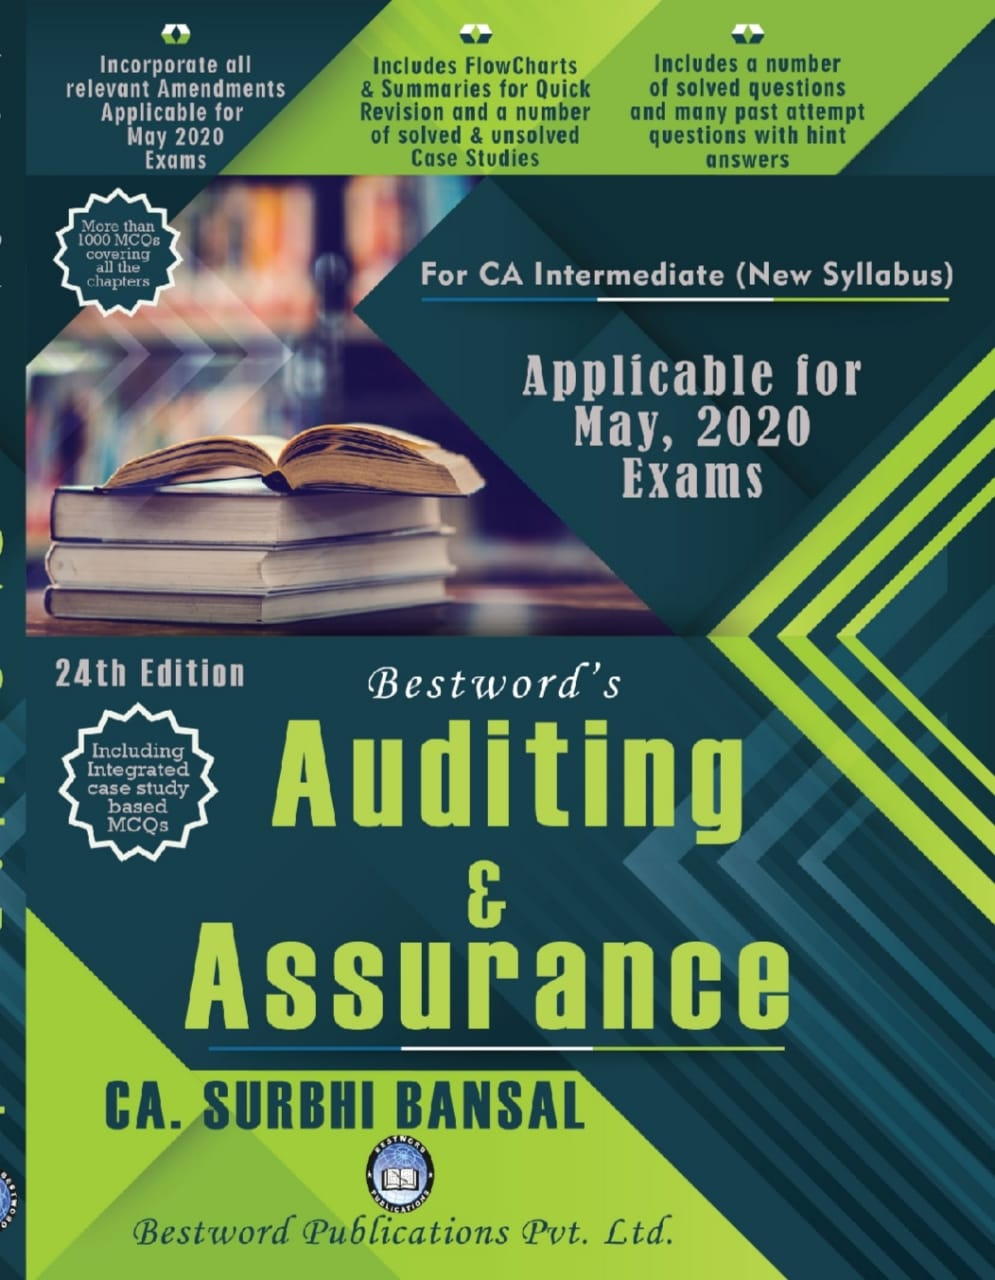 bestword's-auditing-and-assurance---by-ca-surbhi-bansal---24th-edition---for-ca-(intermediate)-may,-2020-exams-(new-syllabus)